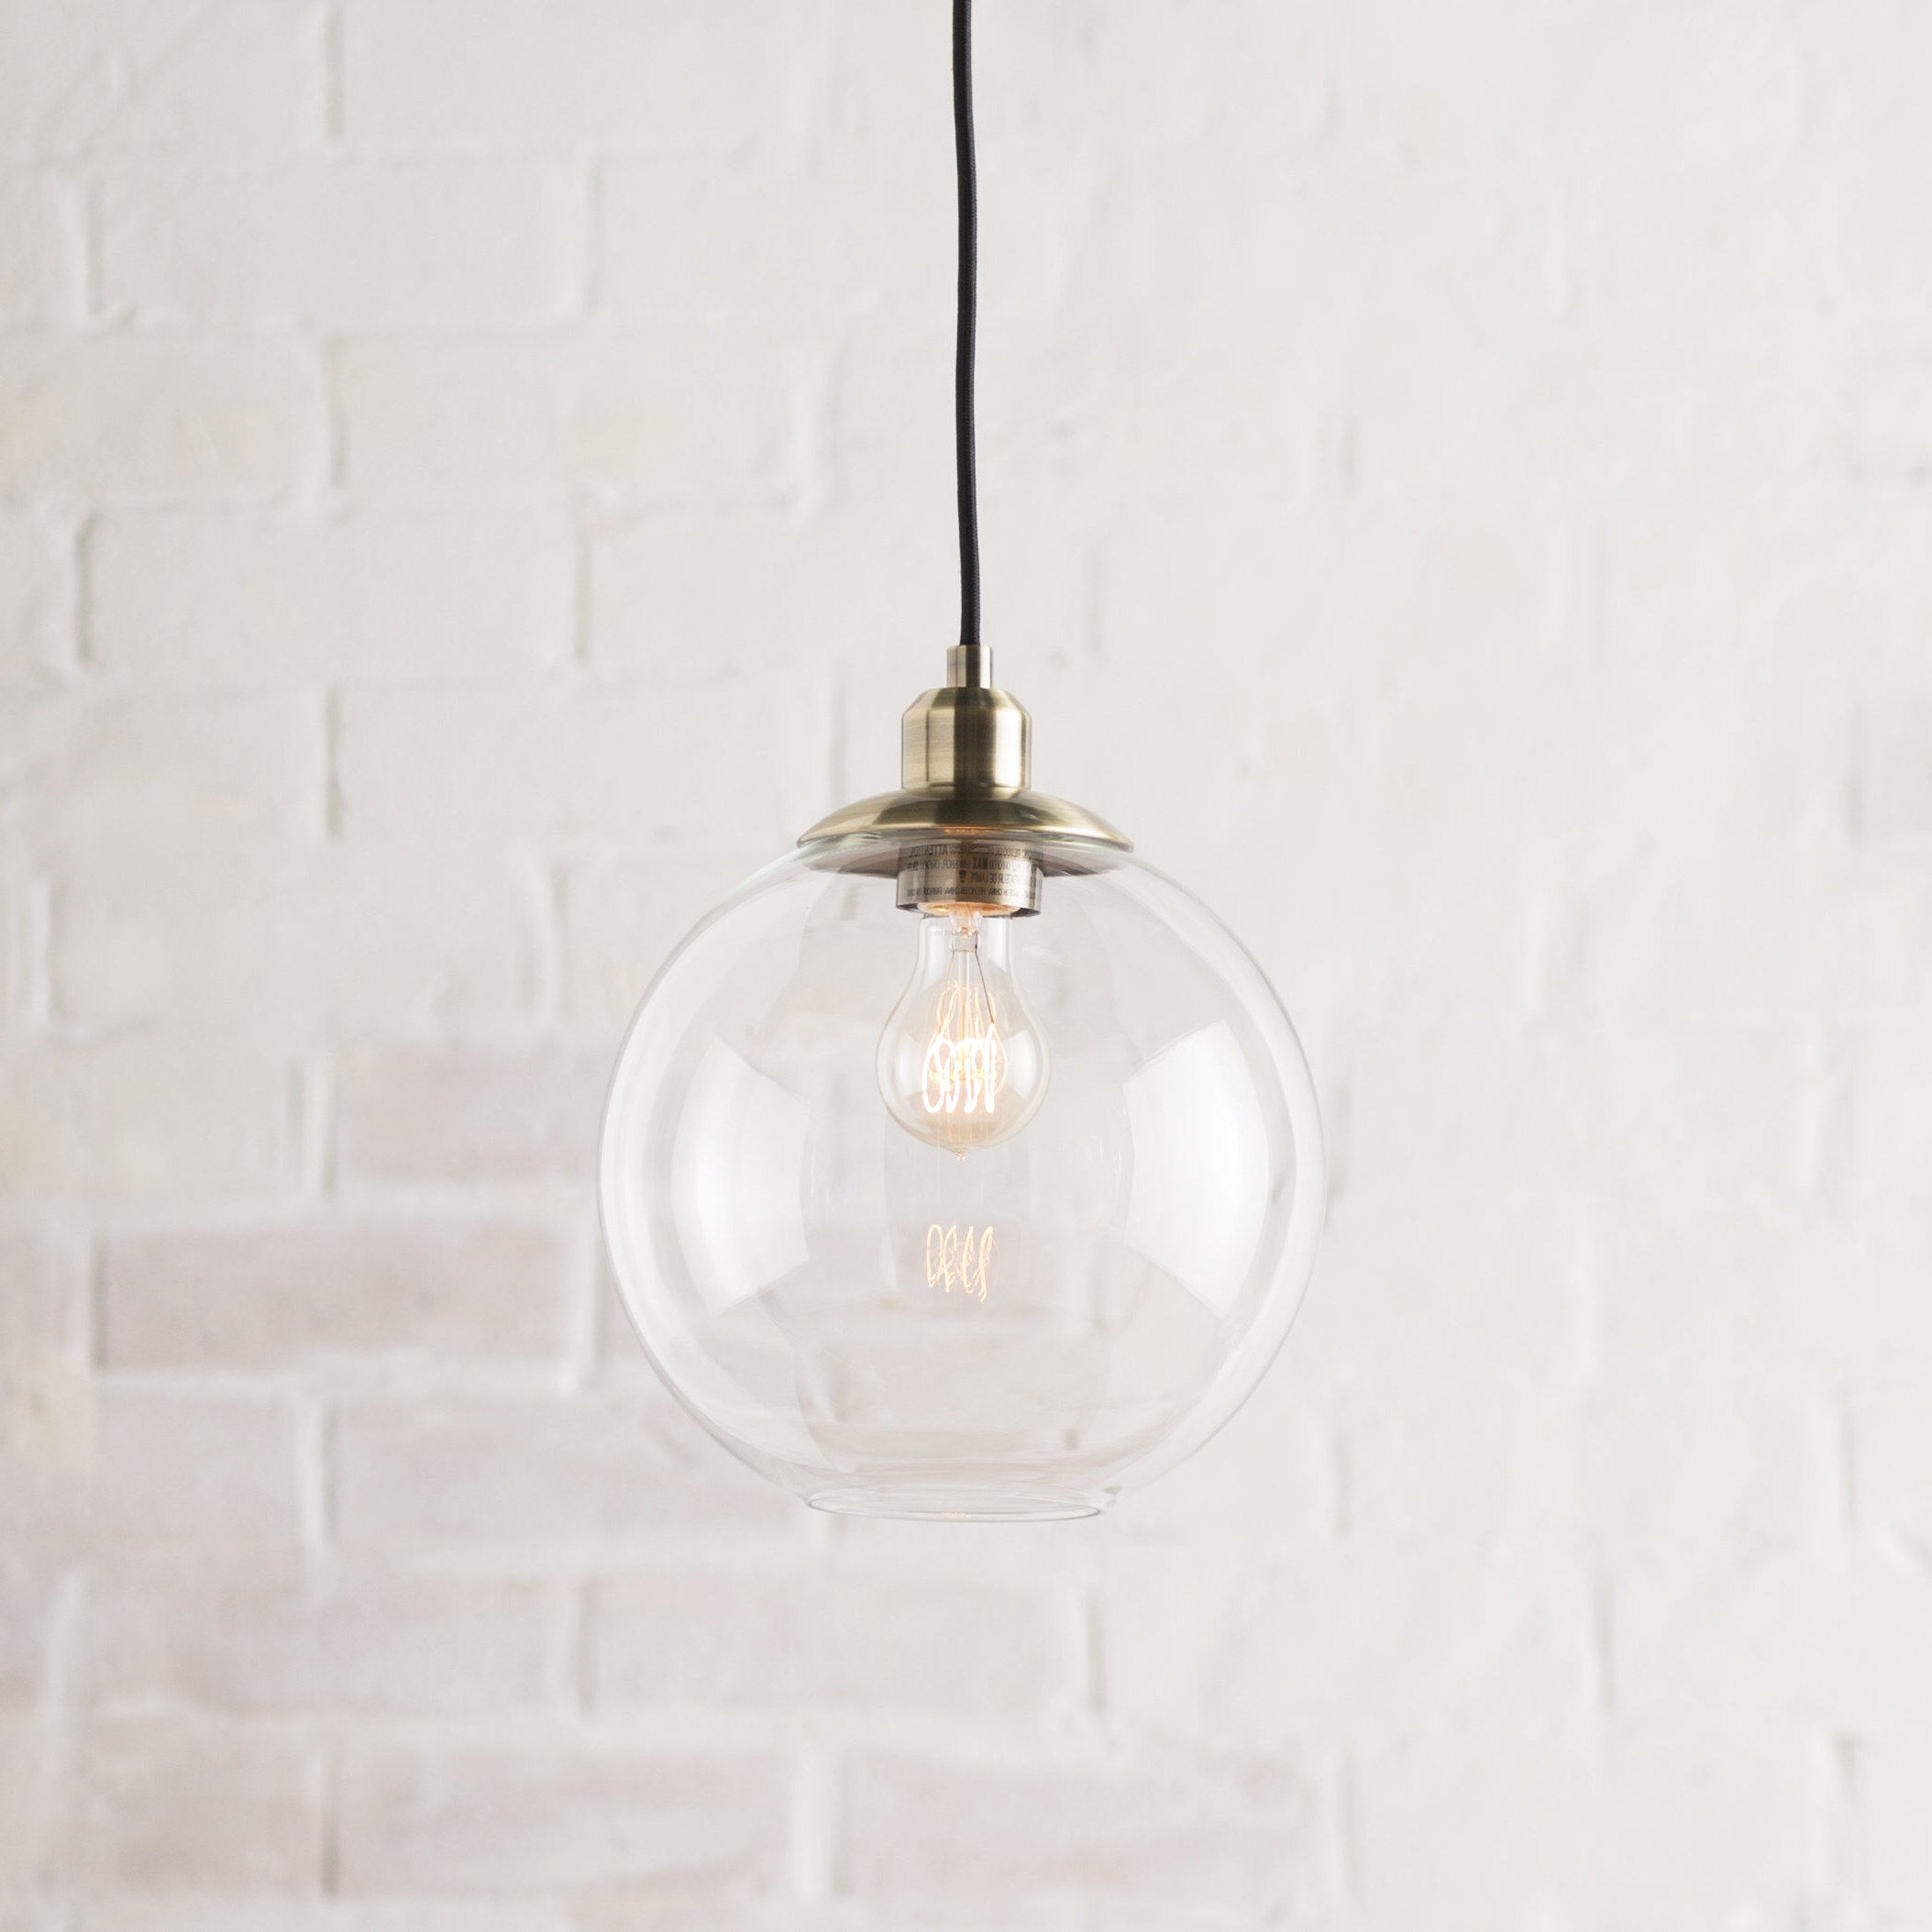 Well Liked Gehry 1 Light Single Globe Pendant With Regard To Betsy 1 Light Single Globe Pendants (View 18 of 20)